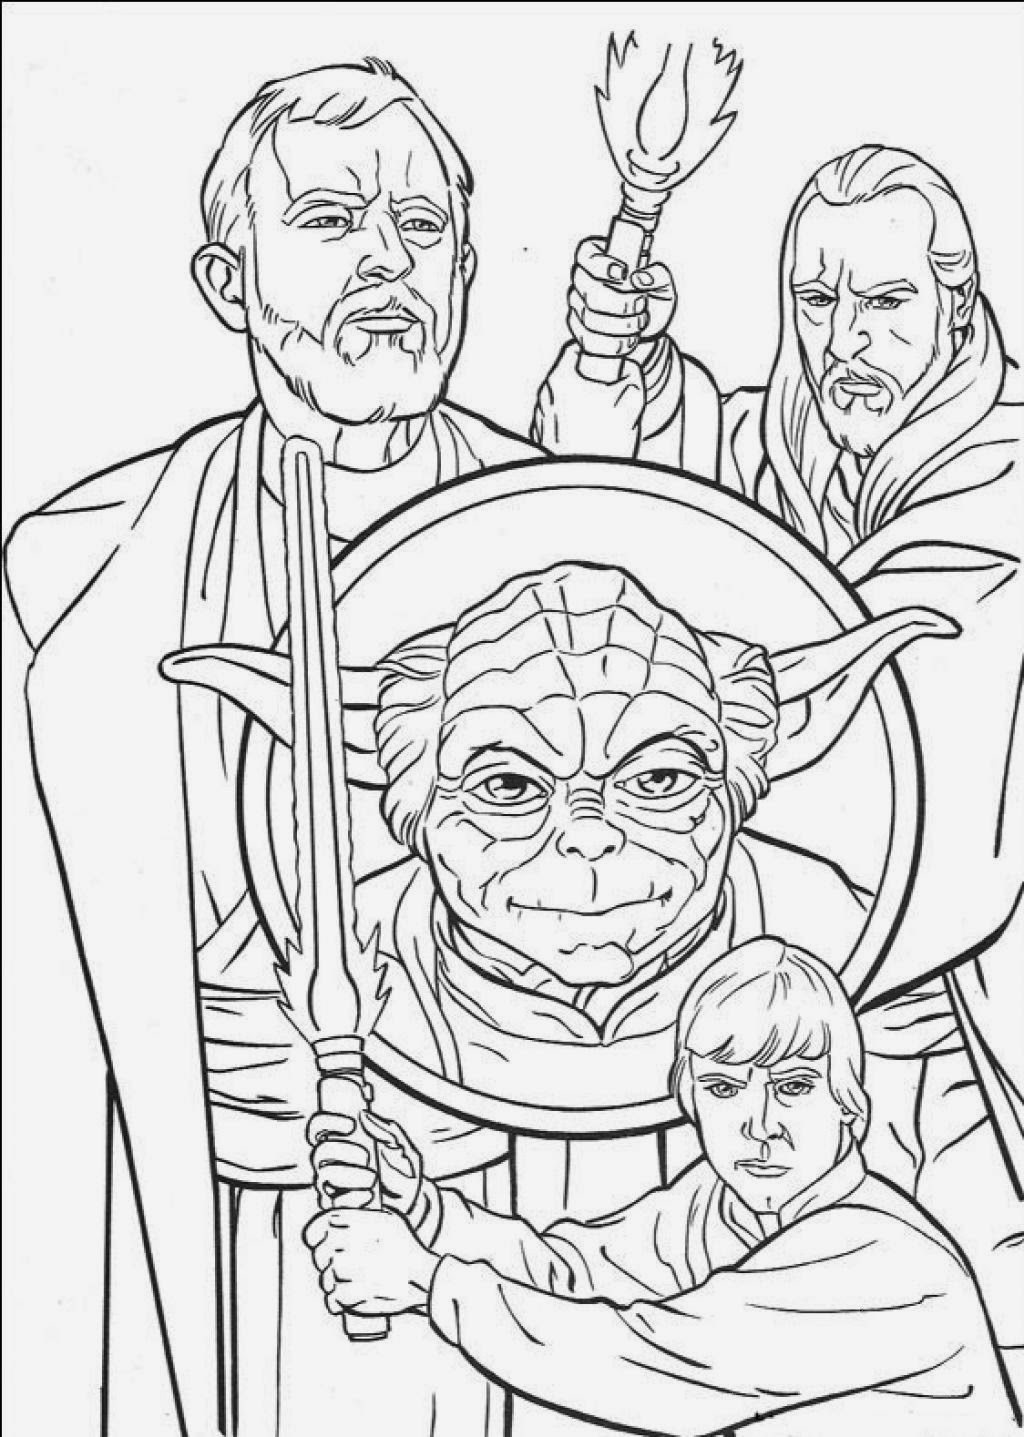 coloring pages and clone wars - photo#12